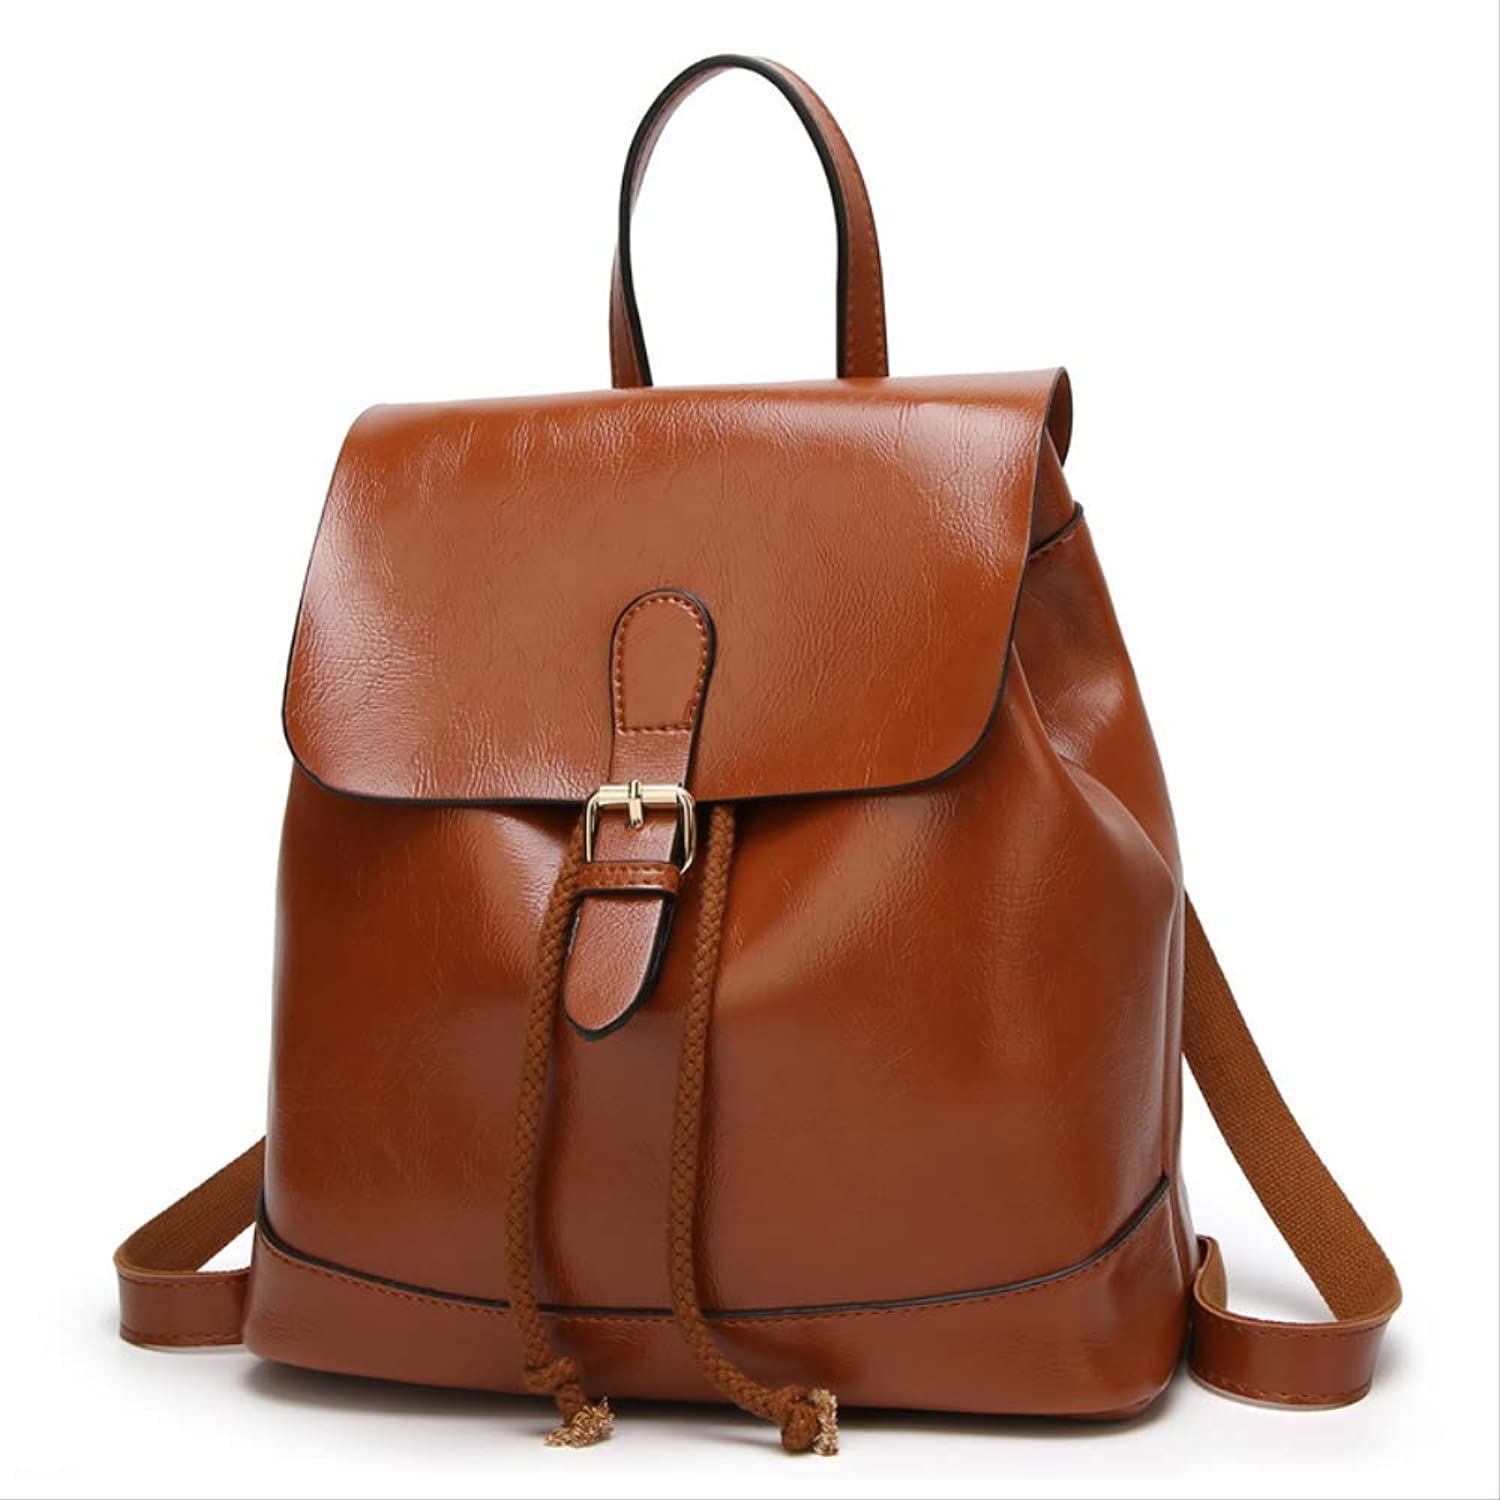 LFNYZX Retro Oil Wax Leather Backpacks for damen Bags Travel Backpack Female Solid Farbe Classic Bagpack B07PYR5H6S